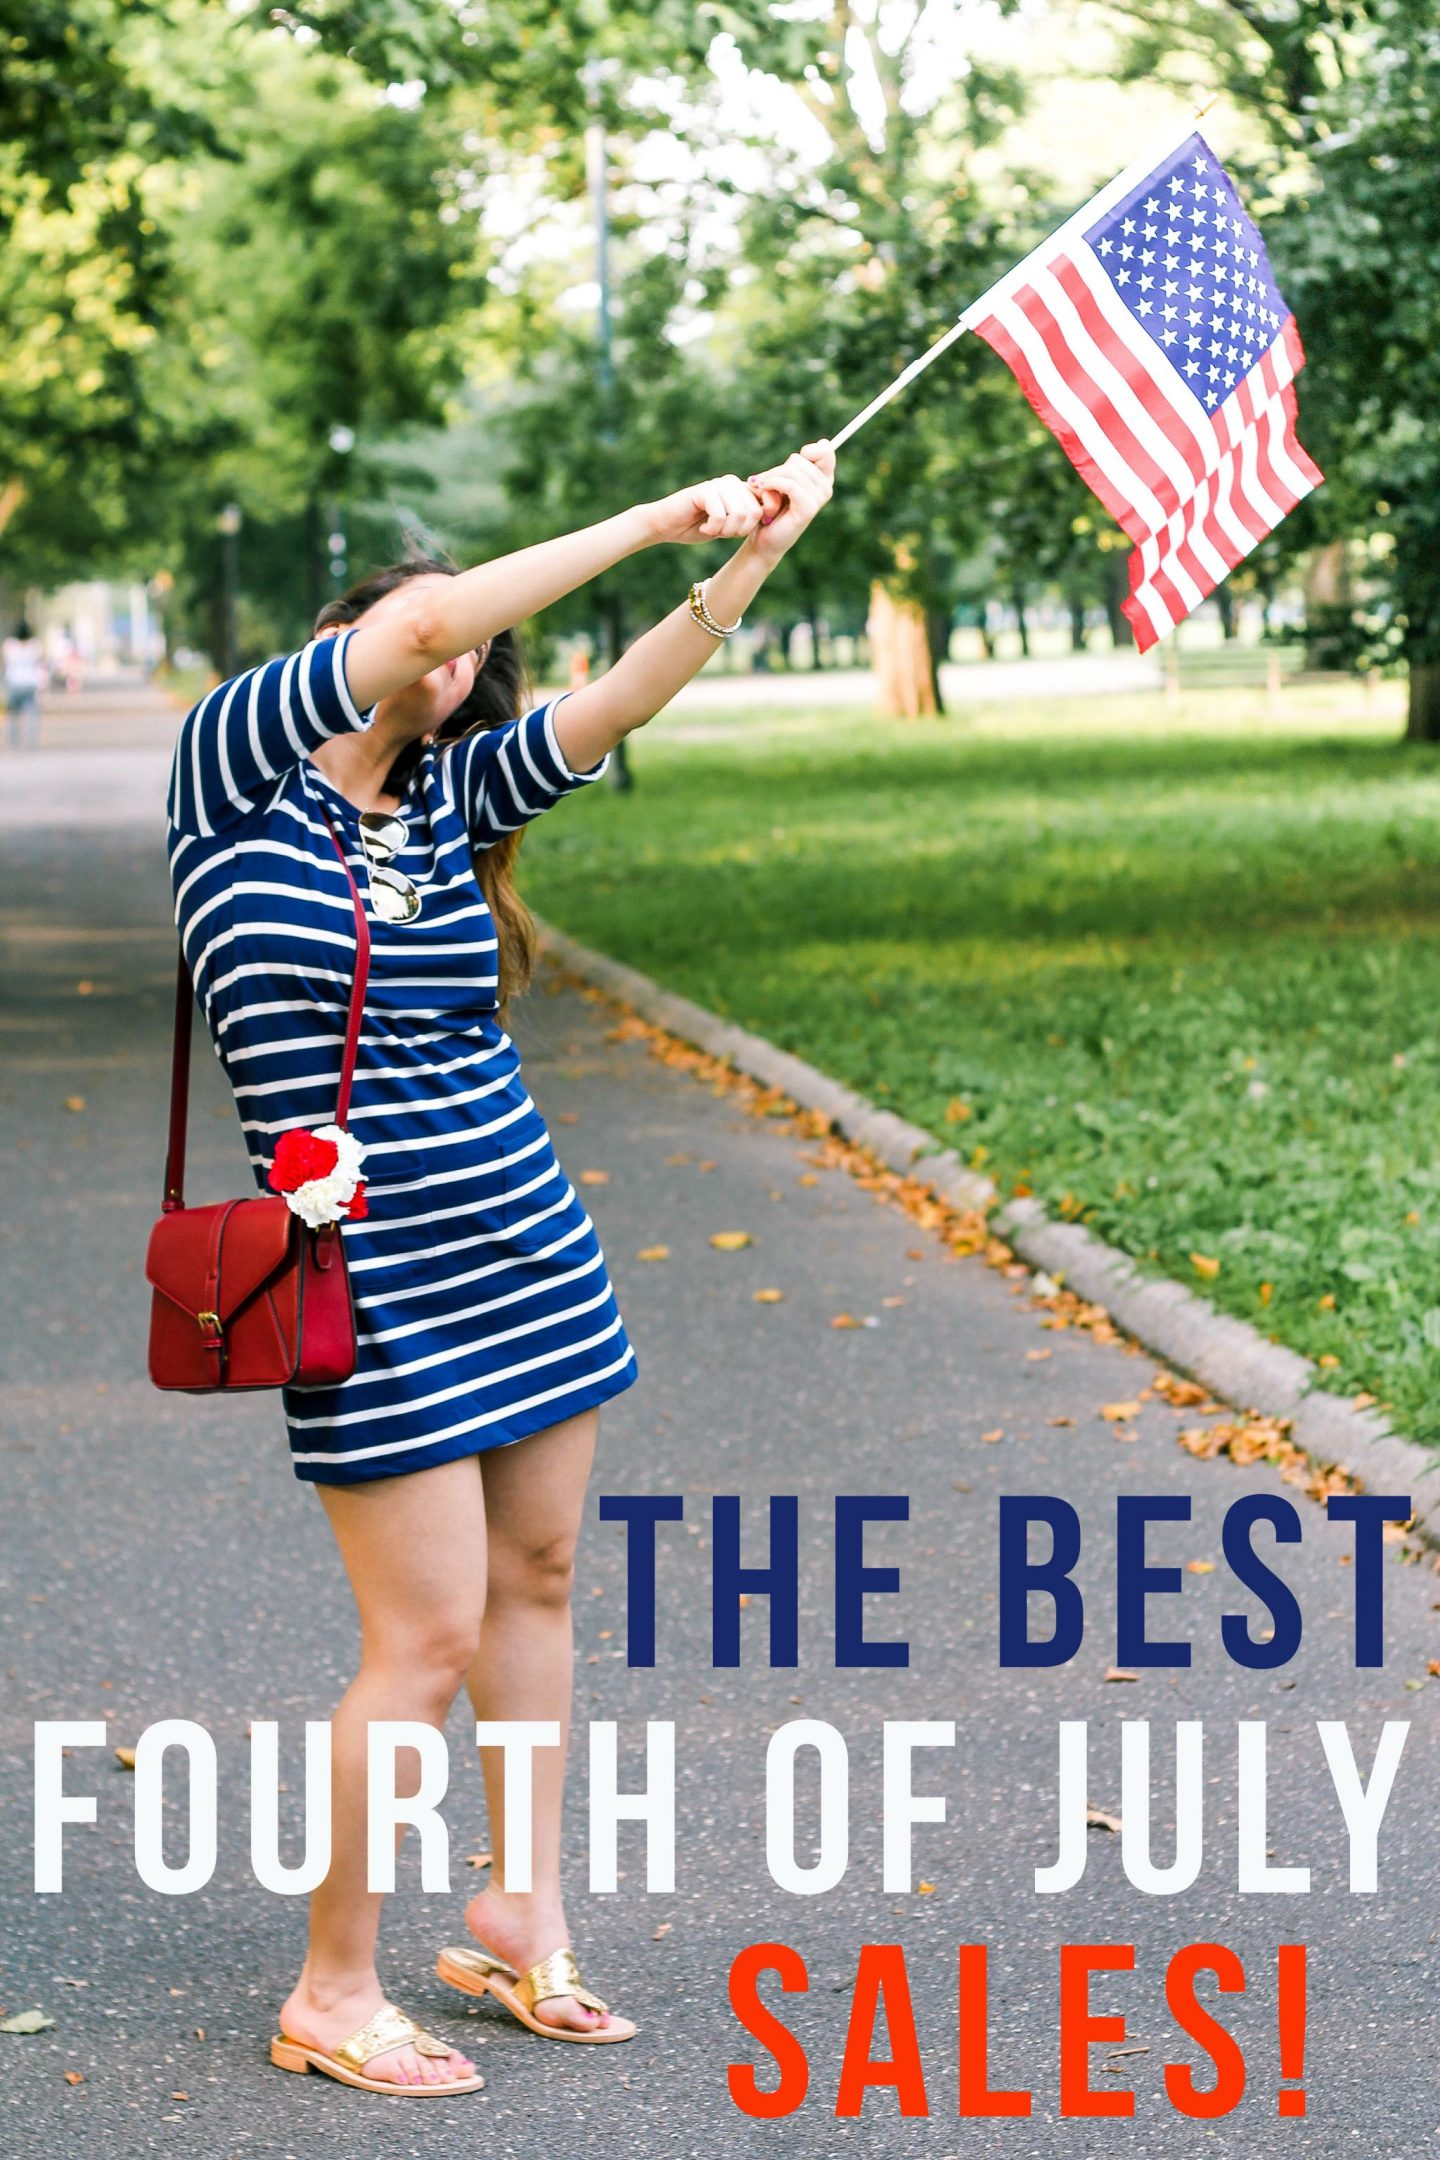 the best fourth of july sales wearing blue and white striped midi dress with red purse and golden jack rogers while holding an american flag.